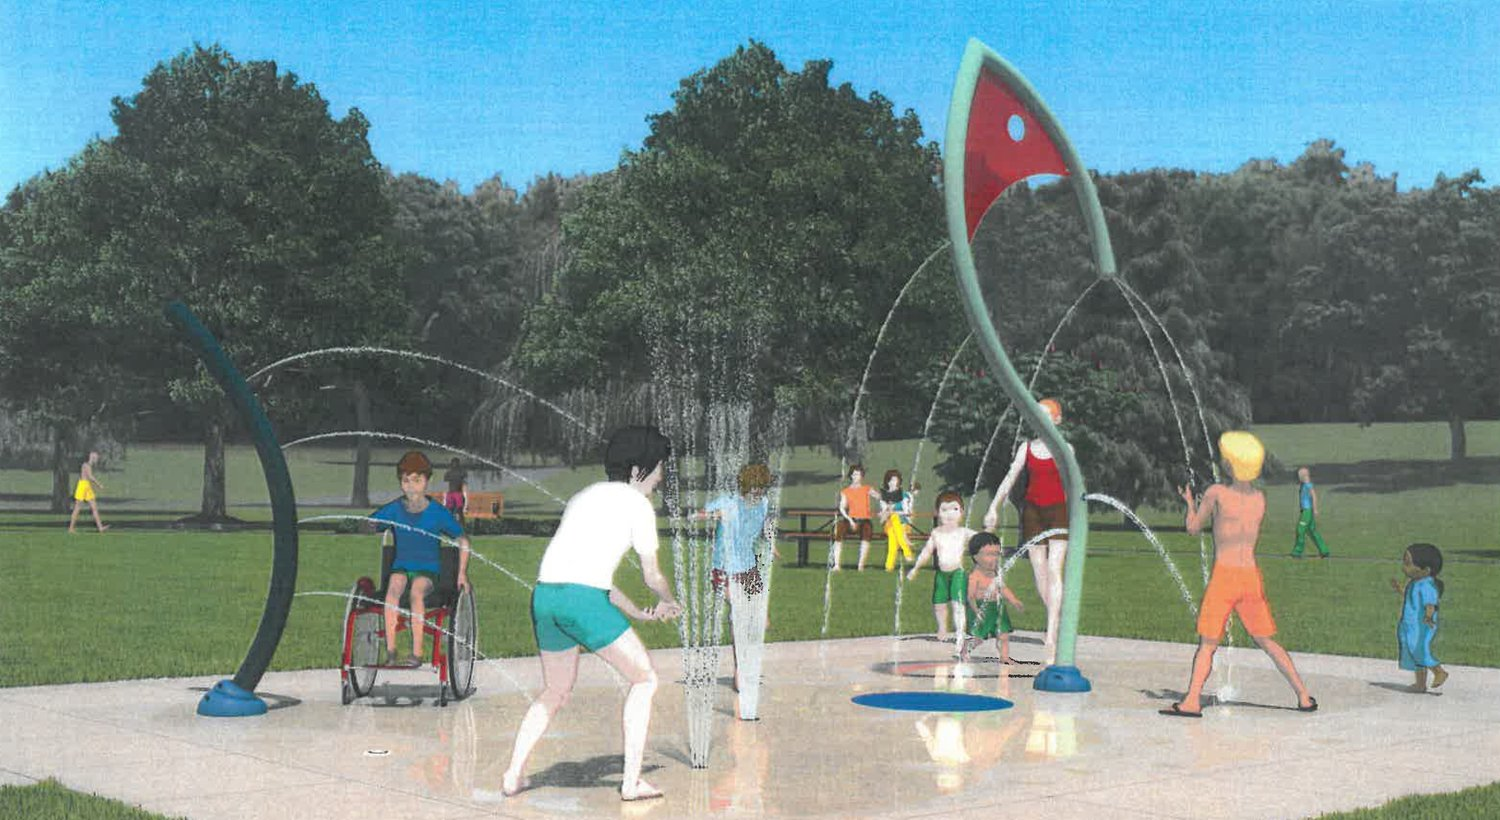 This computer-generated image shows the water play features that will be included at the Police Cove Park splash pad.